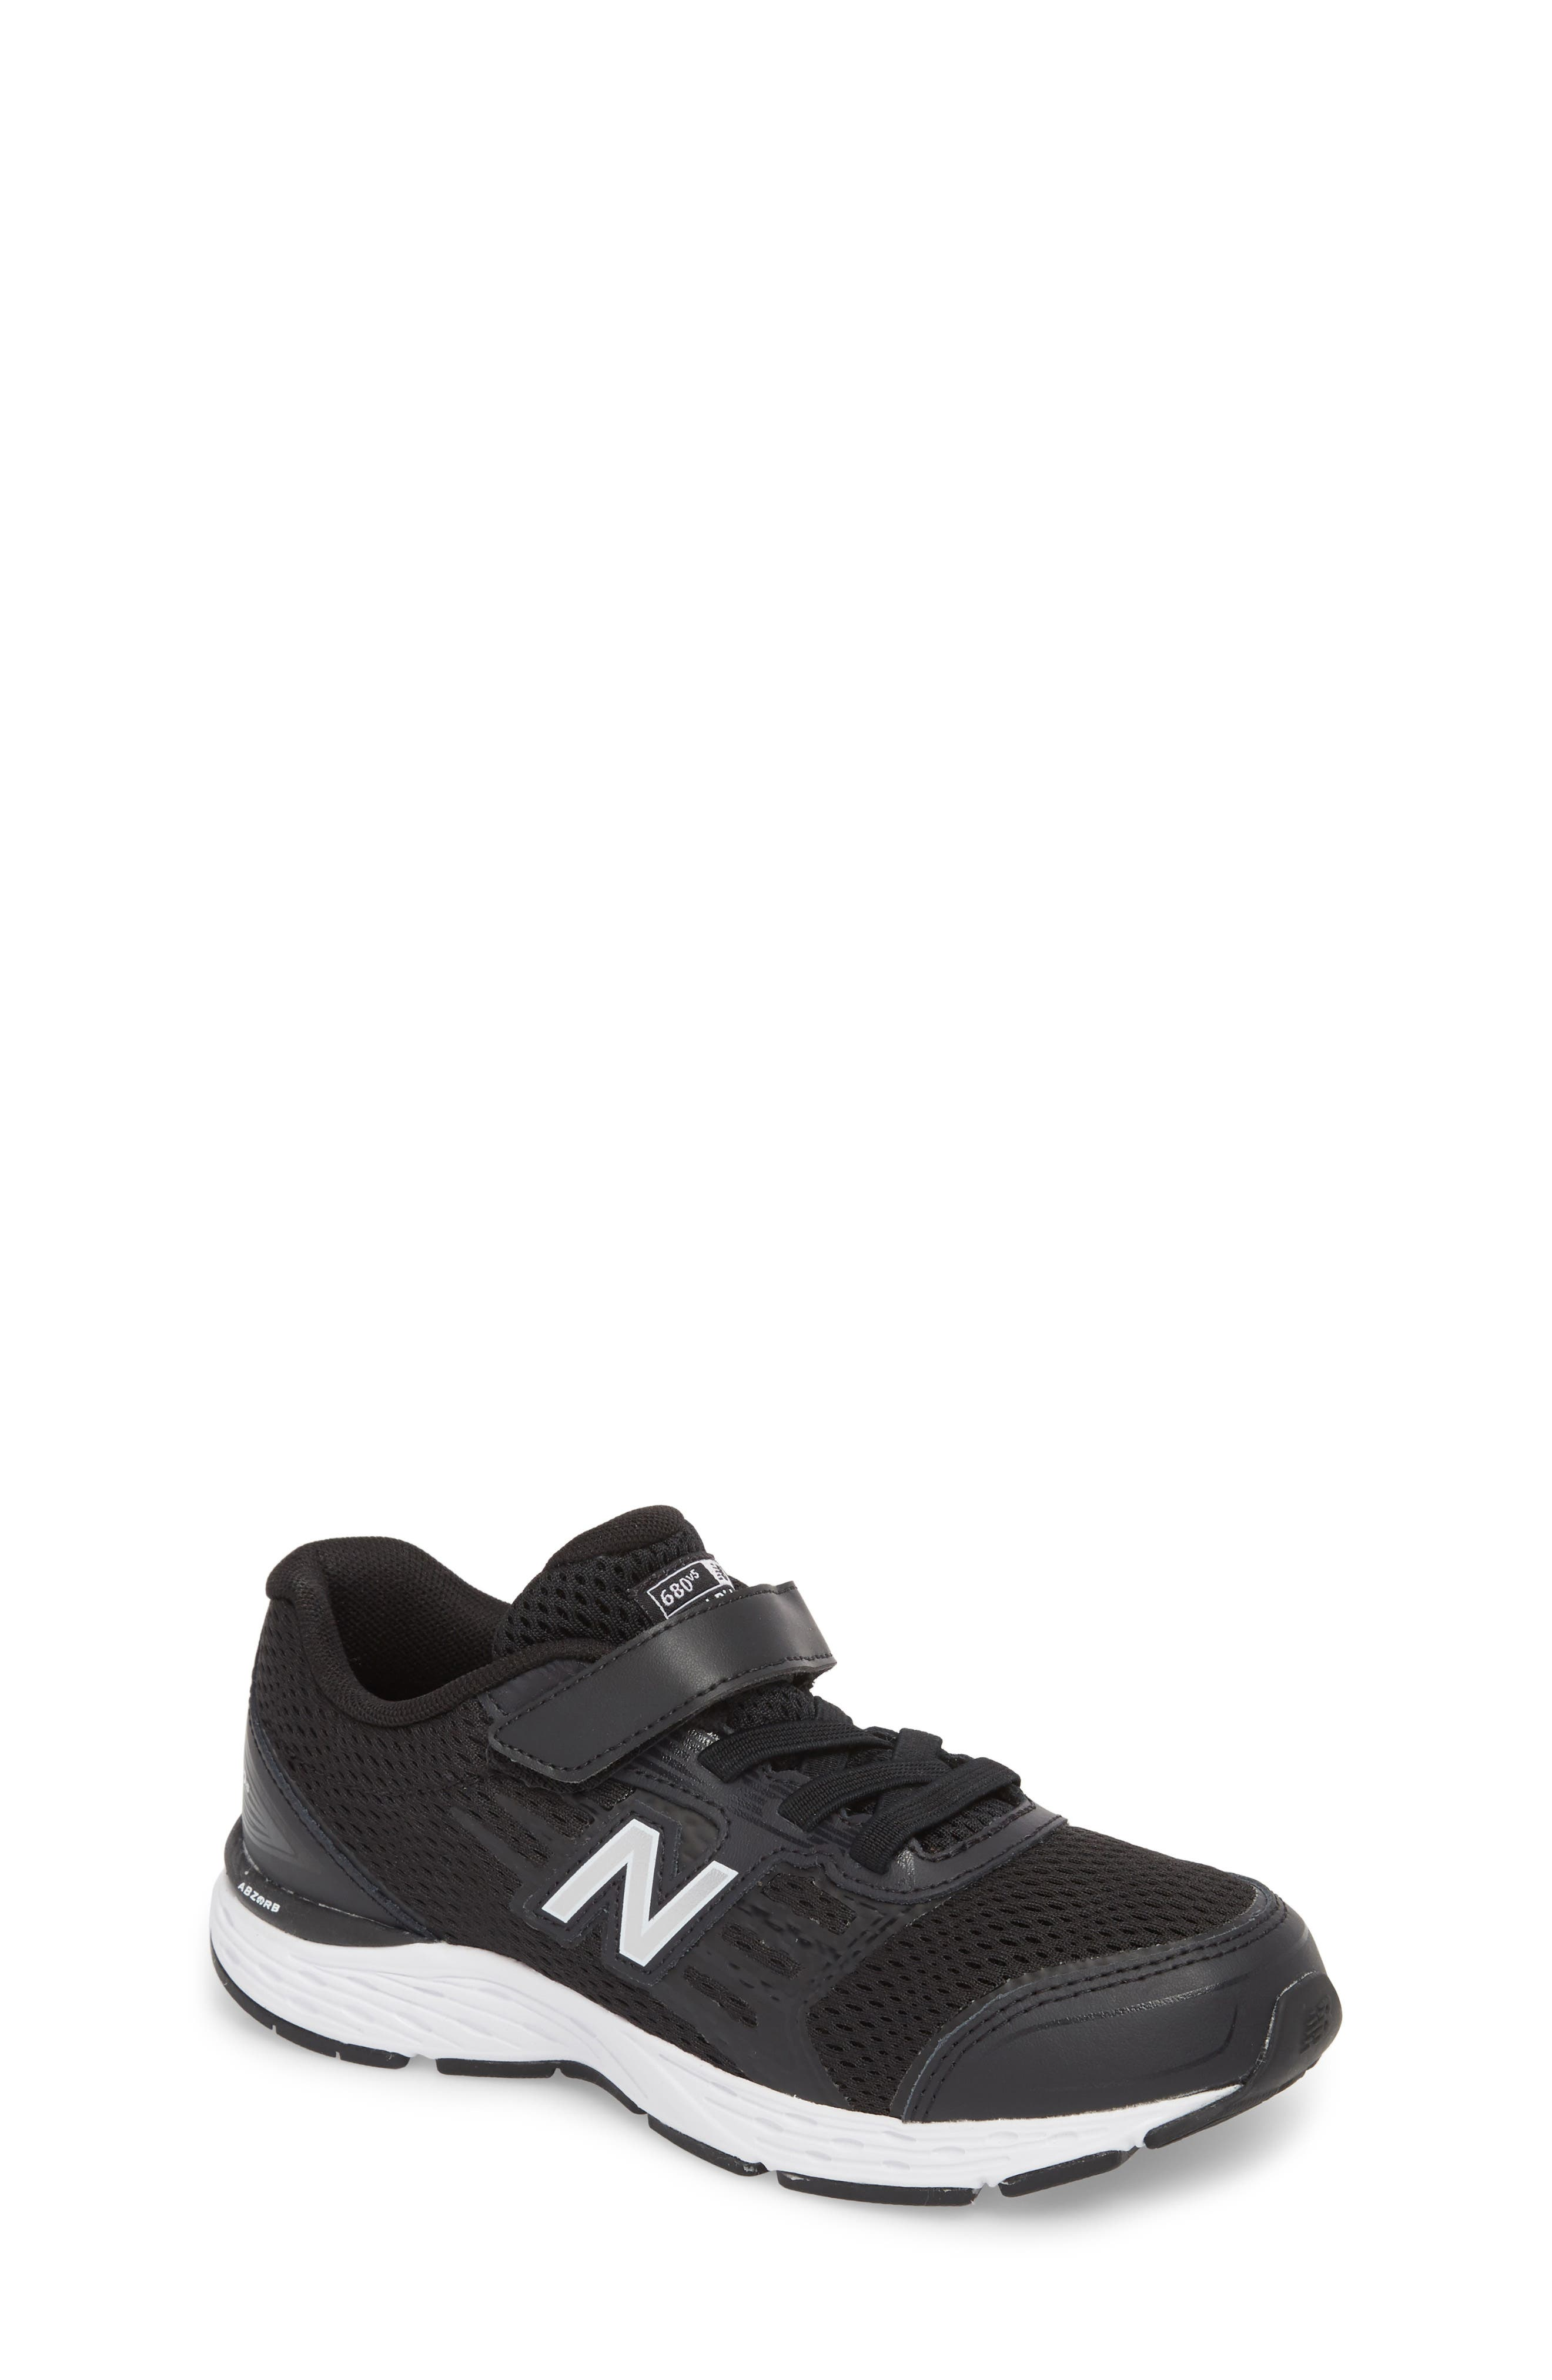 NEW BALANCE 680v5 Sneaker, Main, color, 008